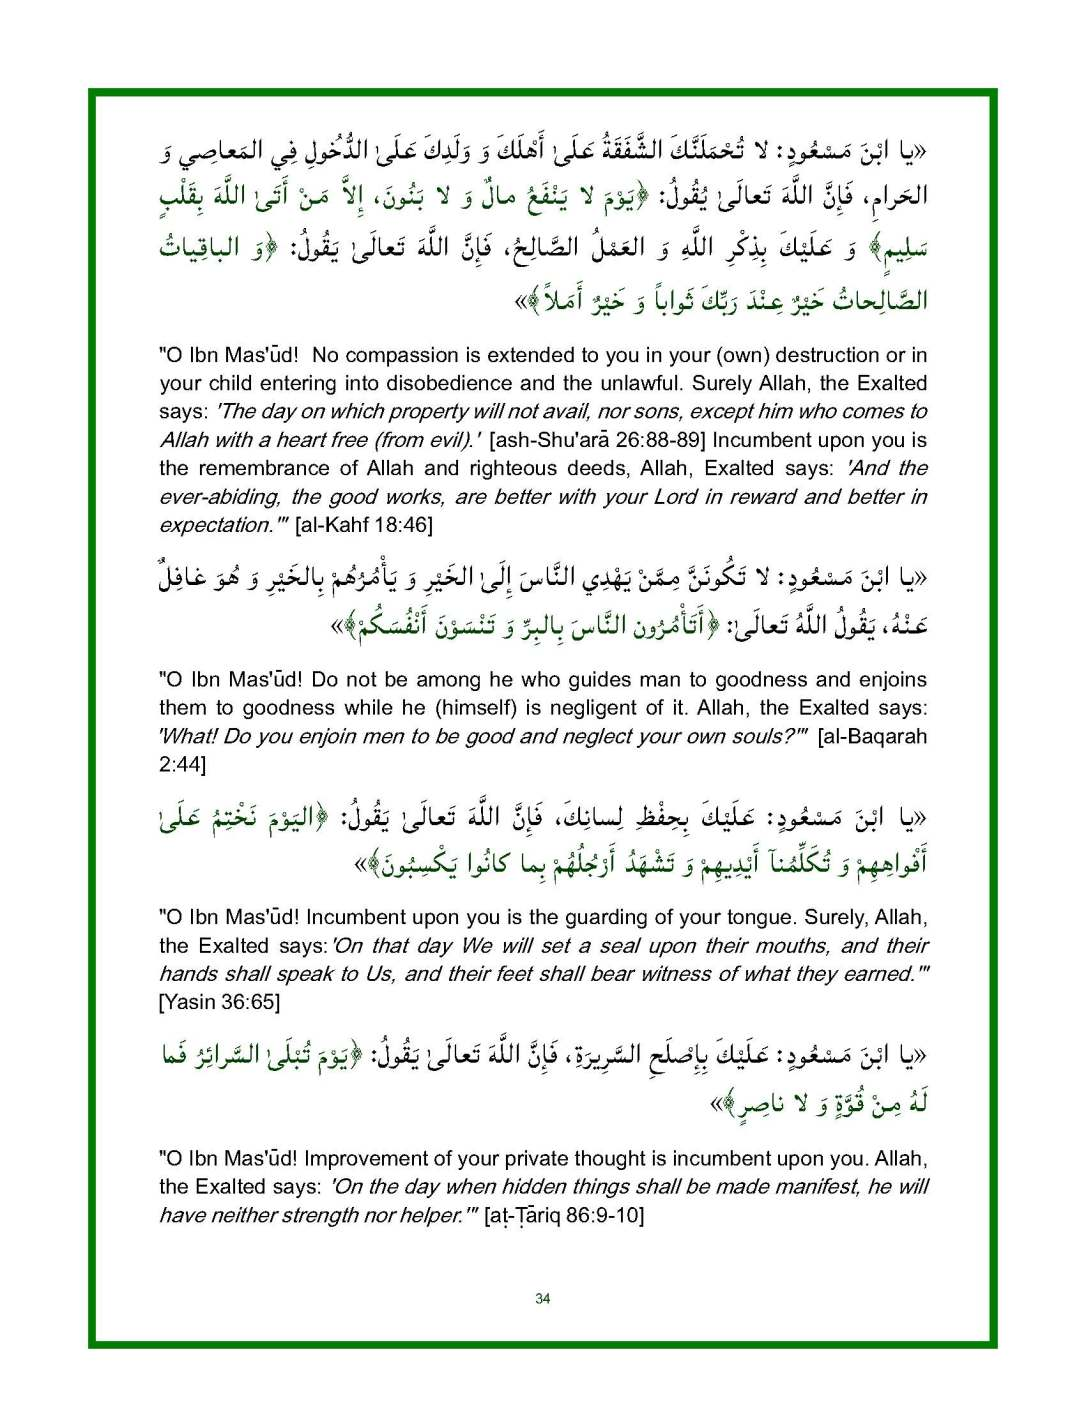 Spiritual-Advice-of-the-Messenger-of-Allah-for-Ibn-Masud-unlocked_Page_34